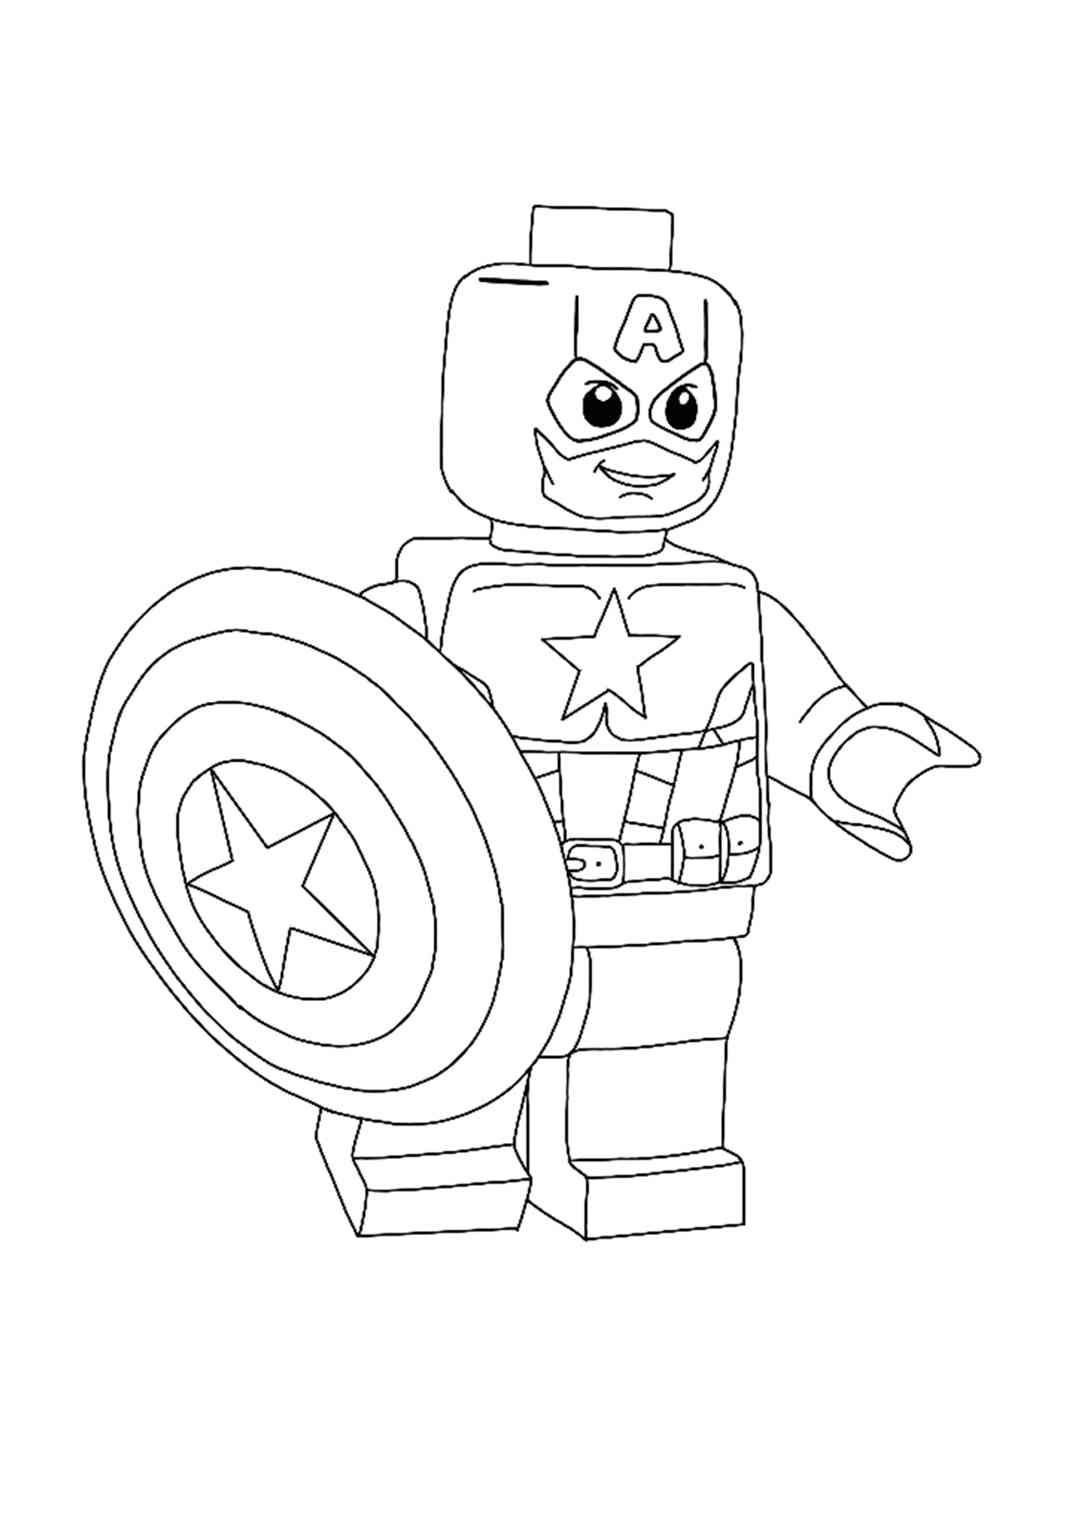 Lego Captain America Coloring Page In 2020 Captain America Coloring Pages Lego Coloring Pages Free Printable Coloring Sheets